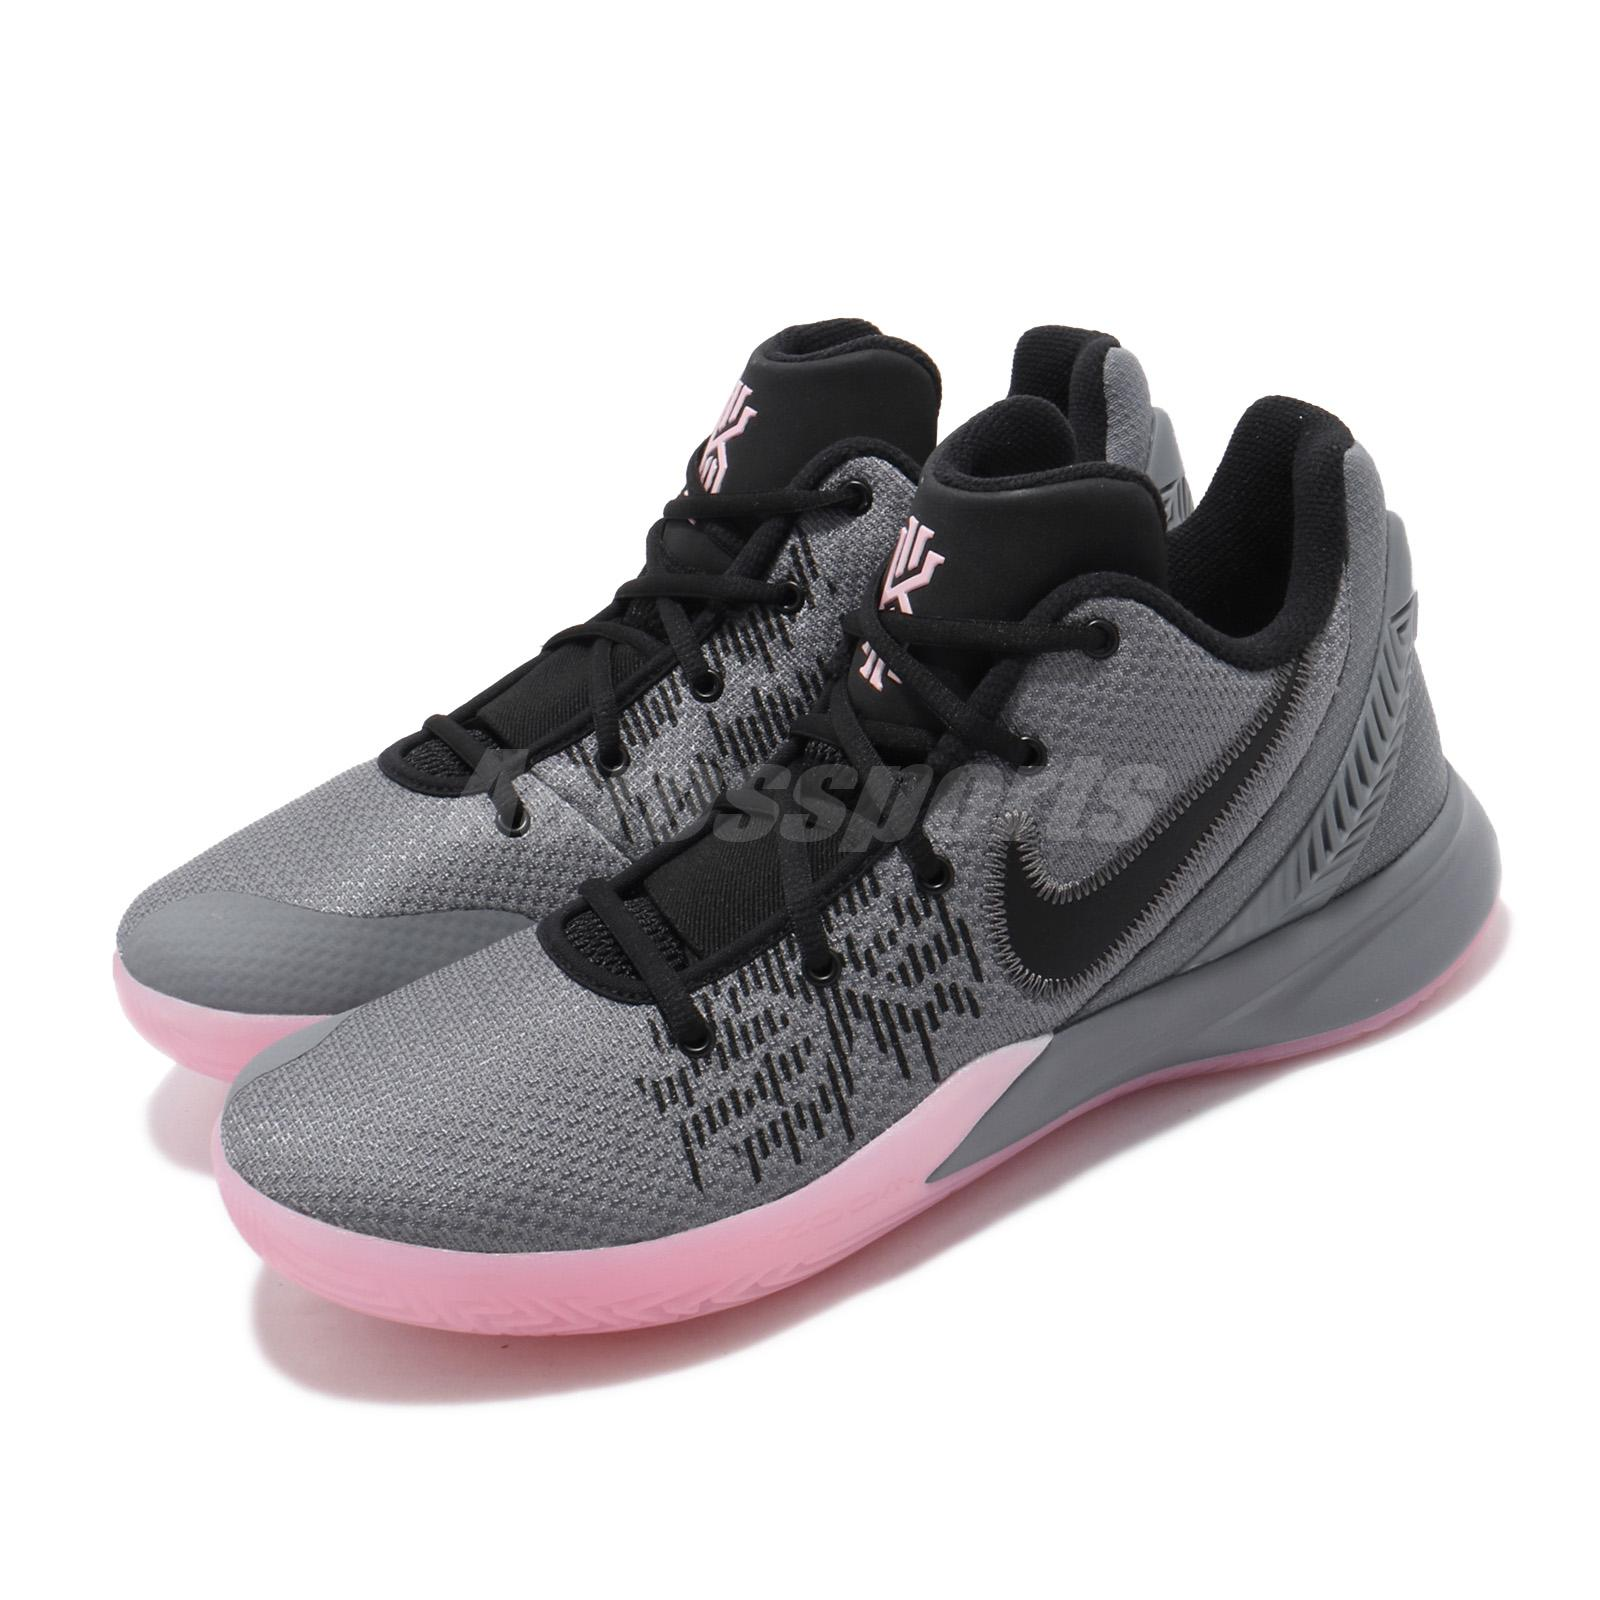 new arrival 34c1f d54db Details about Nike Kyrie Flytrap II EP Irving Grey Black Pink Mens  Basketball Shoes AO4438-006